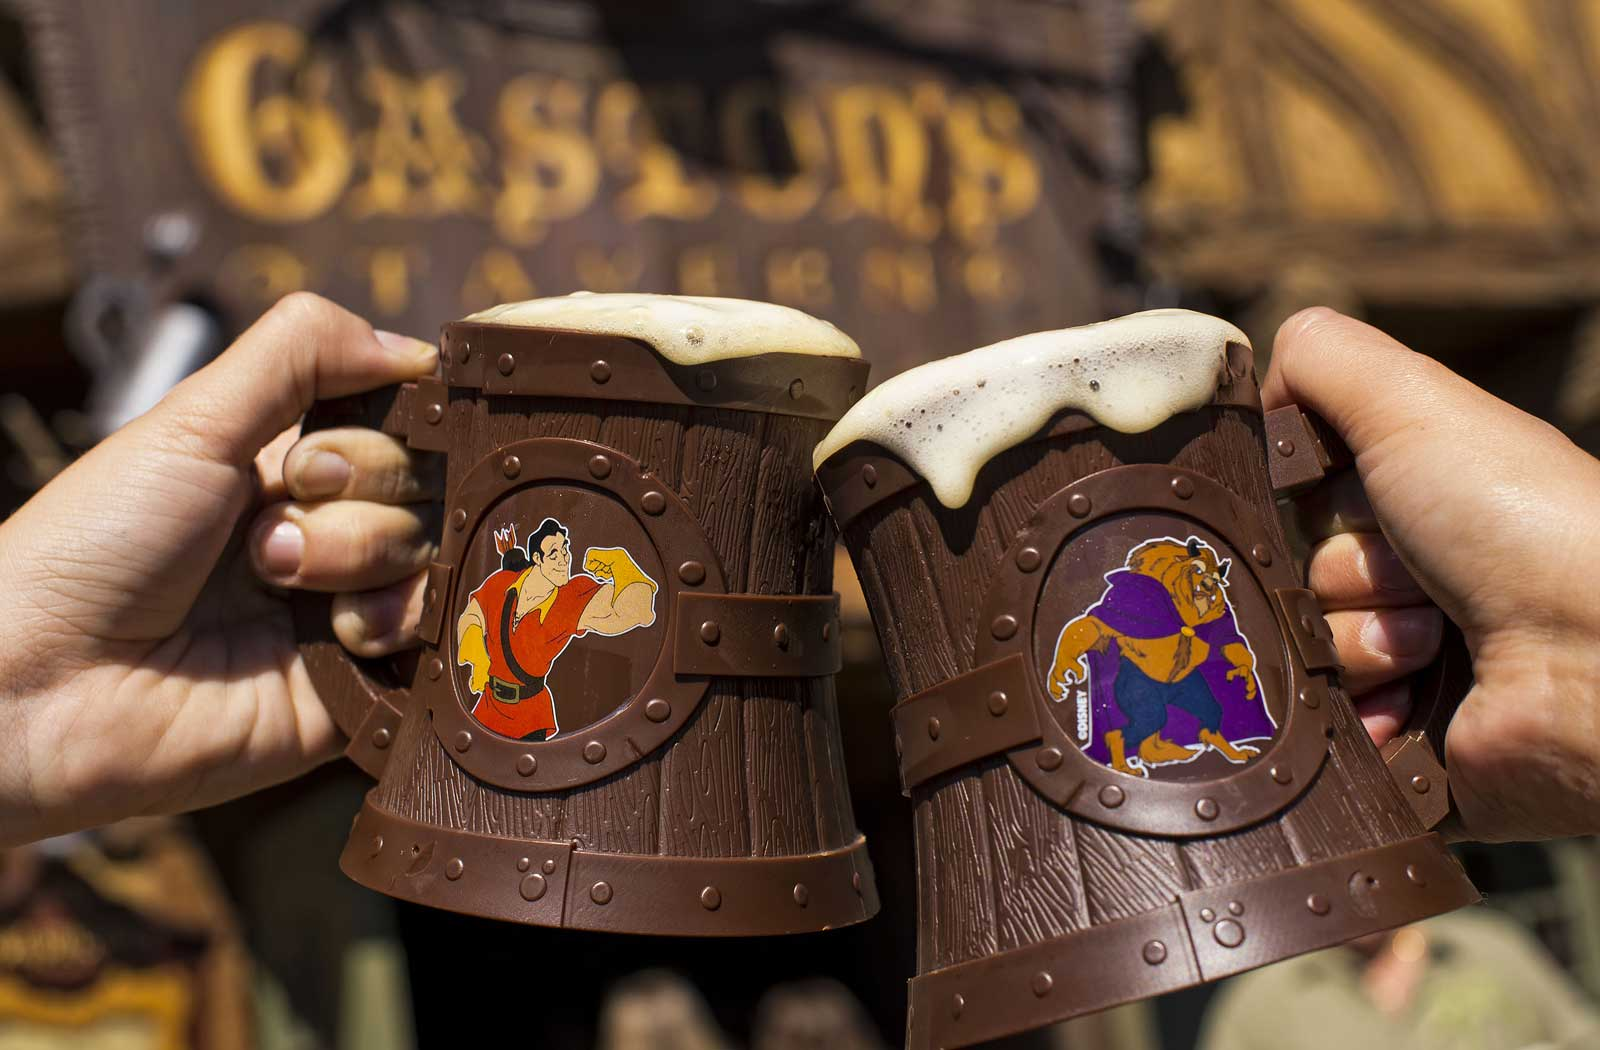 LeFou's Brew at Gaston's Tavern